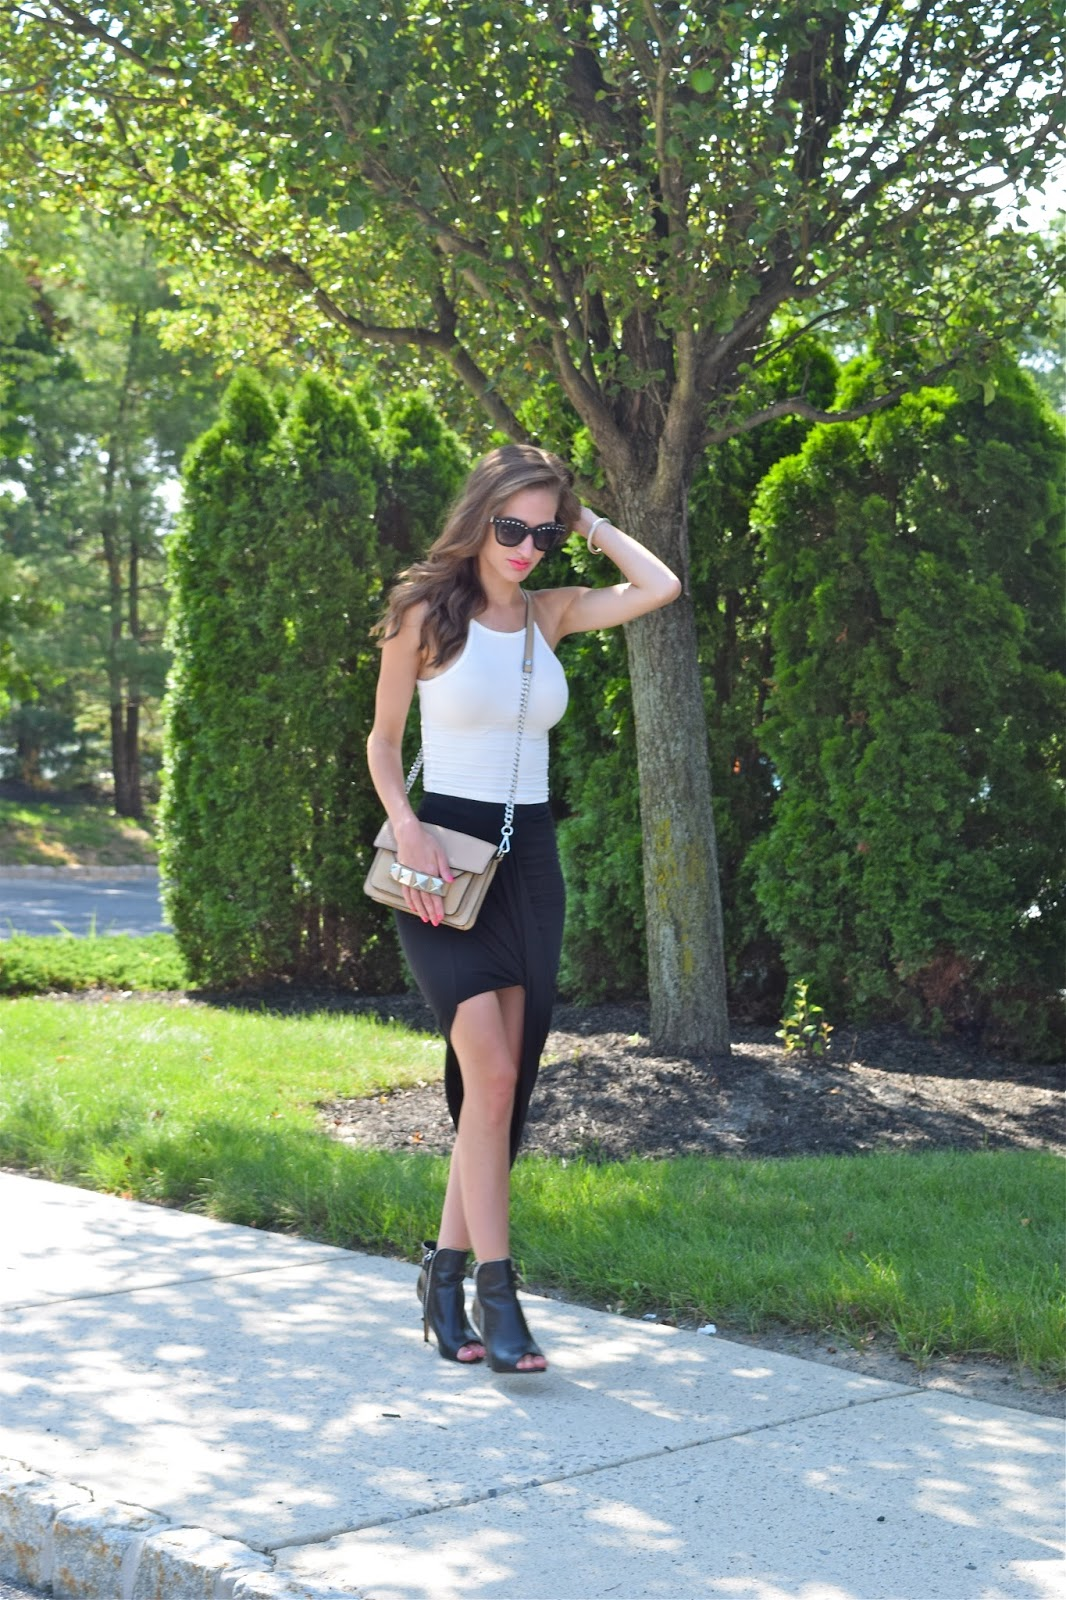 Wearing American Eagle Crop Top Tee, Express Black Wrapped Skirt, Linea Pelle Grayson Bar Bag, Valentino Rockstud Sunglasses